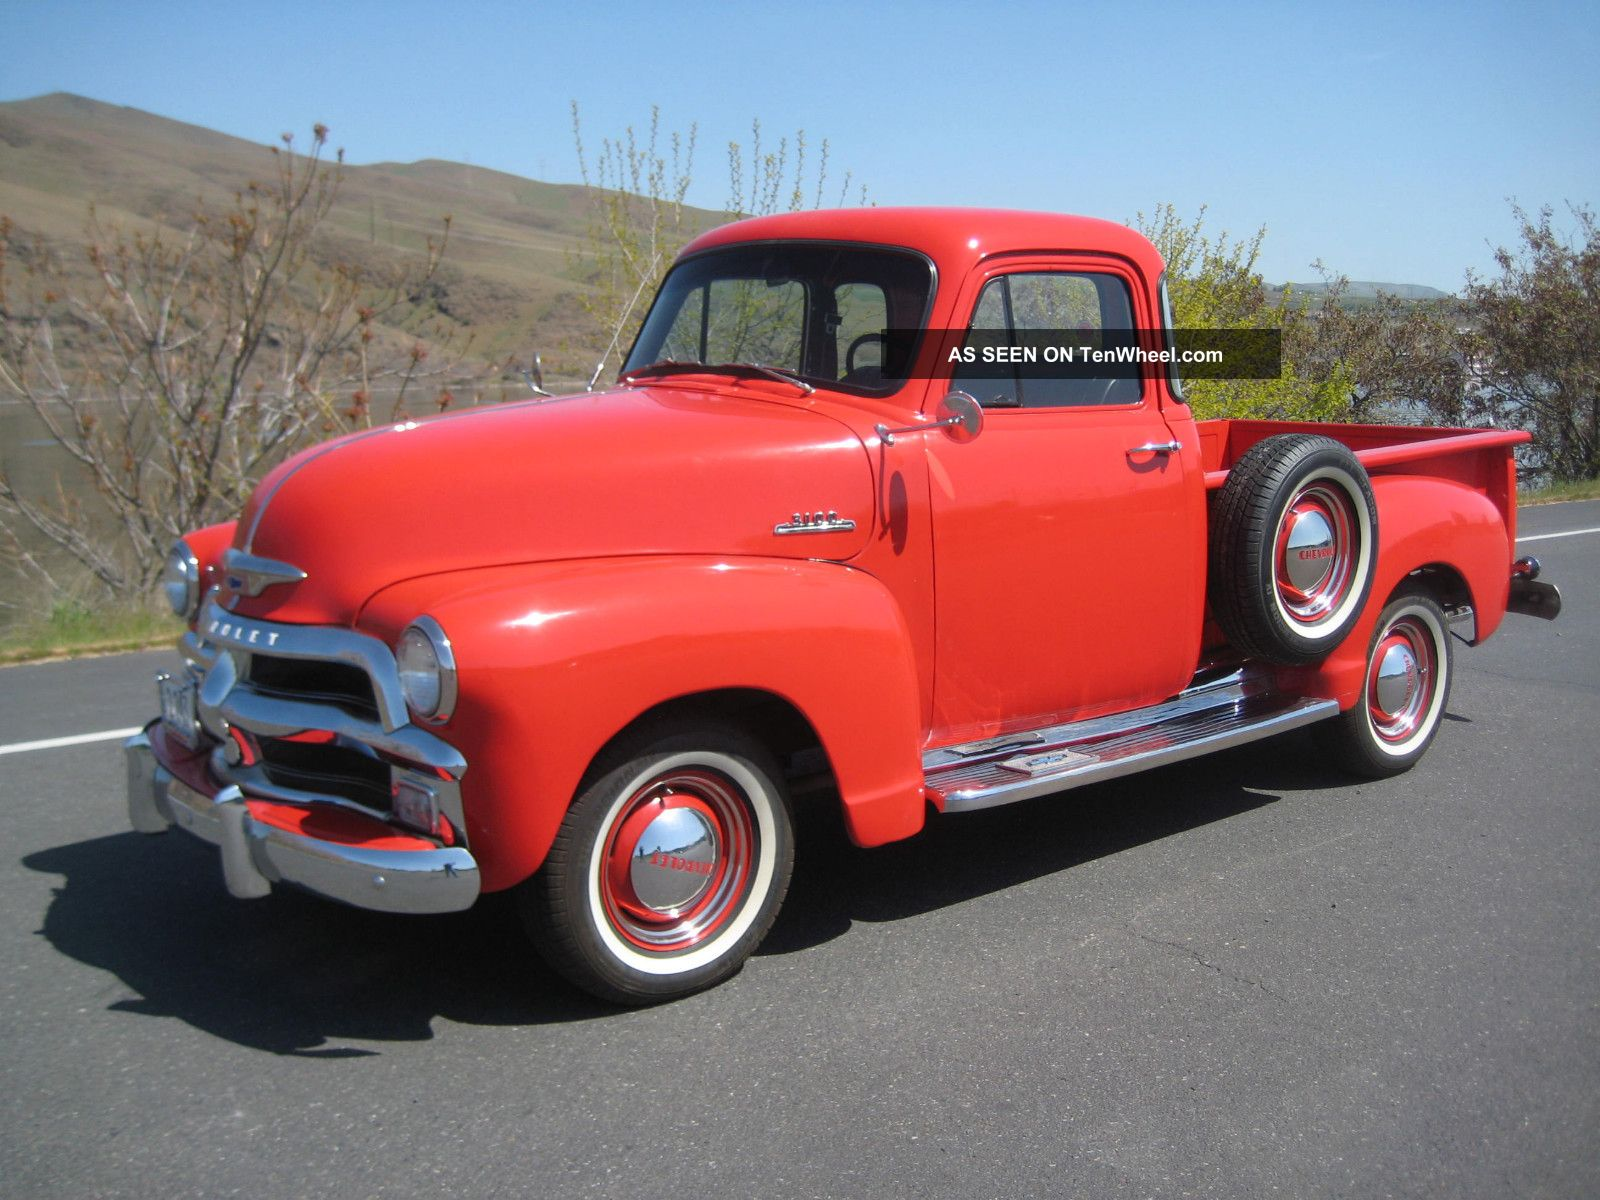 1954 Serues 3100 1 / 2 Ton Chevy With Hydra - Matic, ,  5 Window. Other Pickups photo